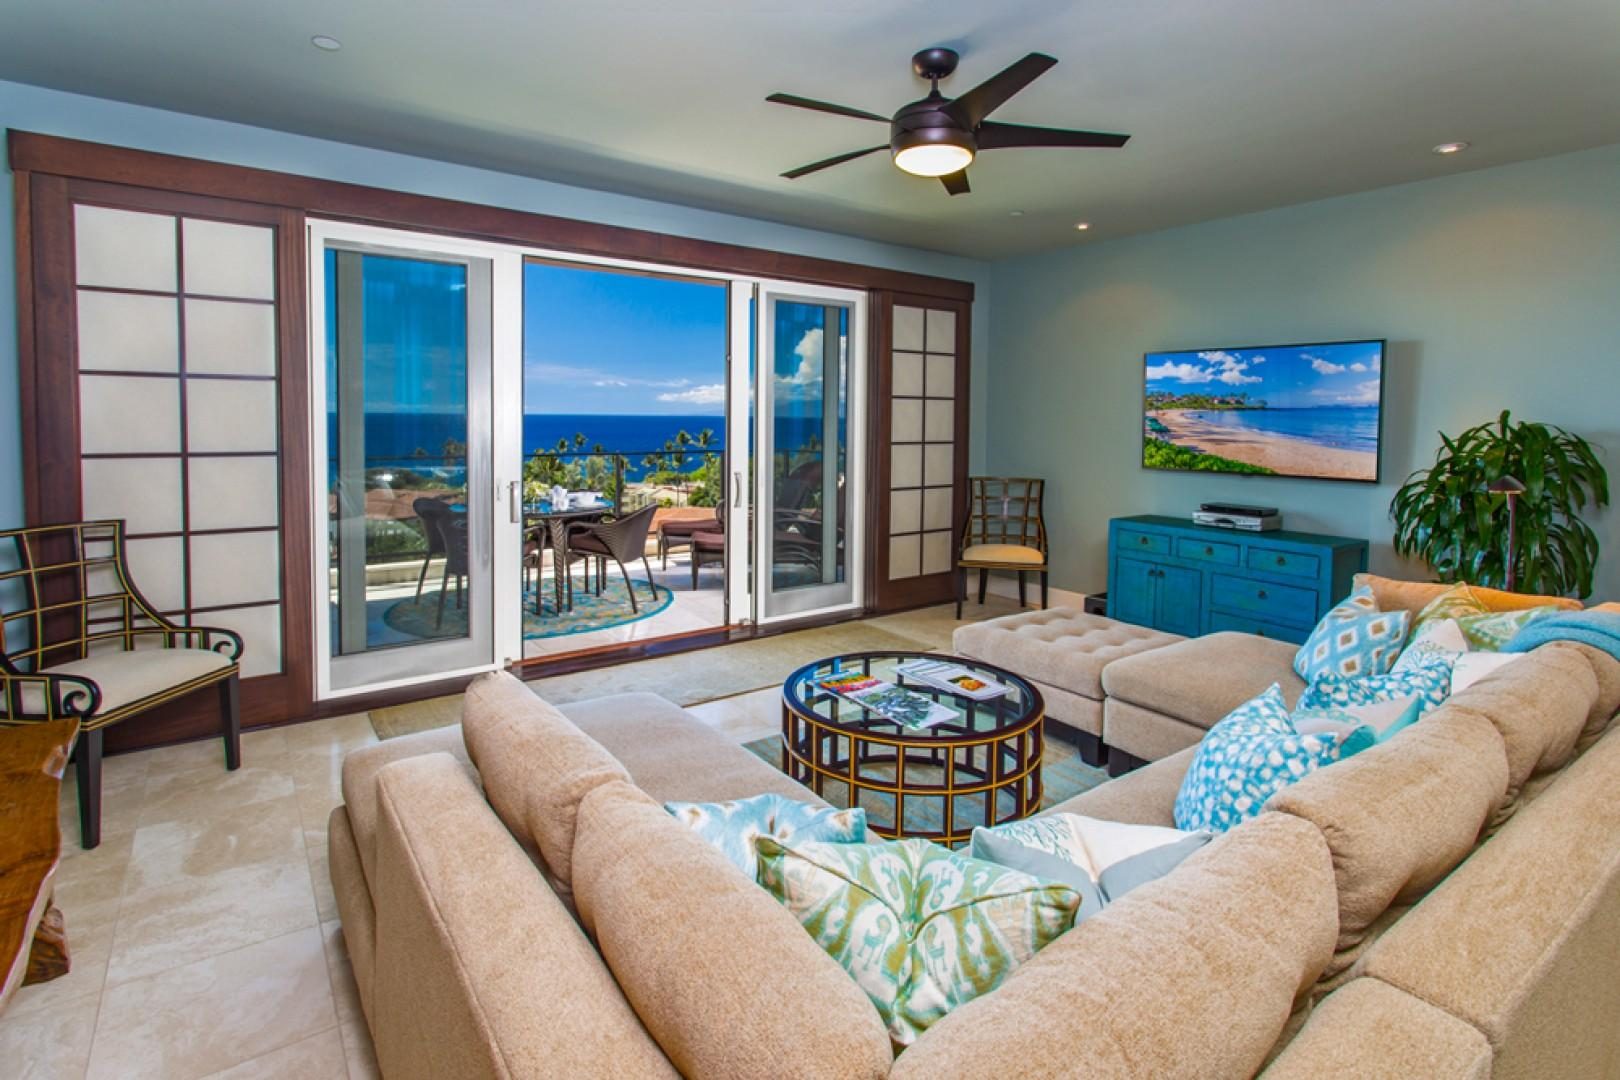 J505 Ocean View Great Room with Exceptional Views, Comfortable Decor, and State-of-the-Art Entertainment Amenities